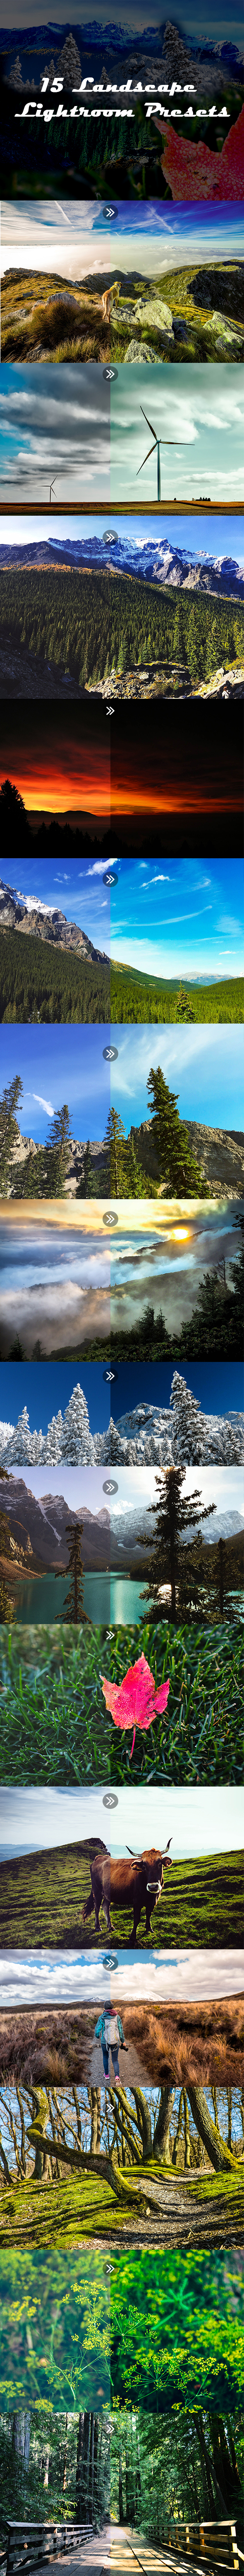 15 Landscape Lightroom Presets - Landscape Lightroom Presets